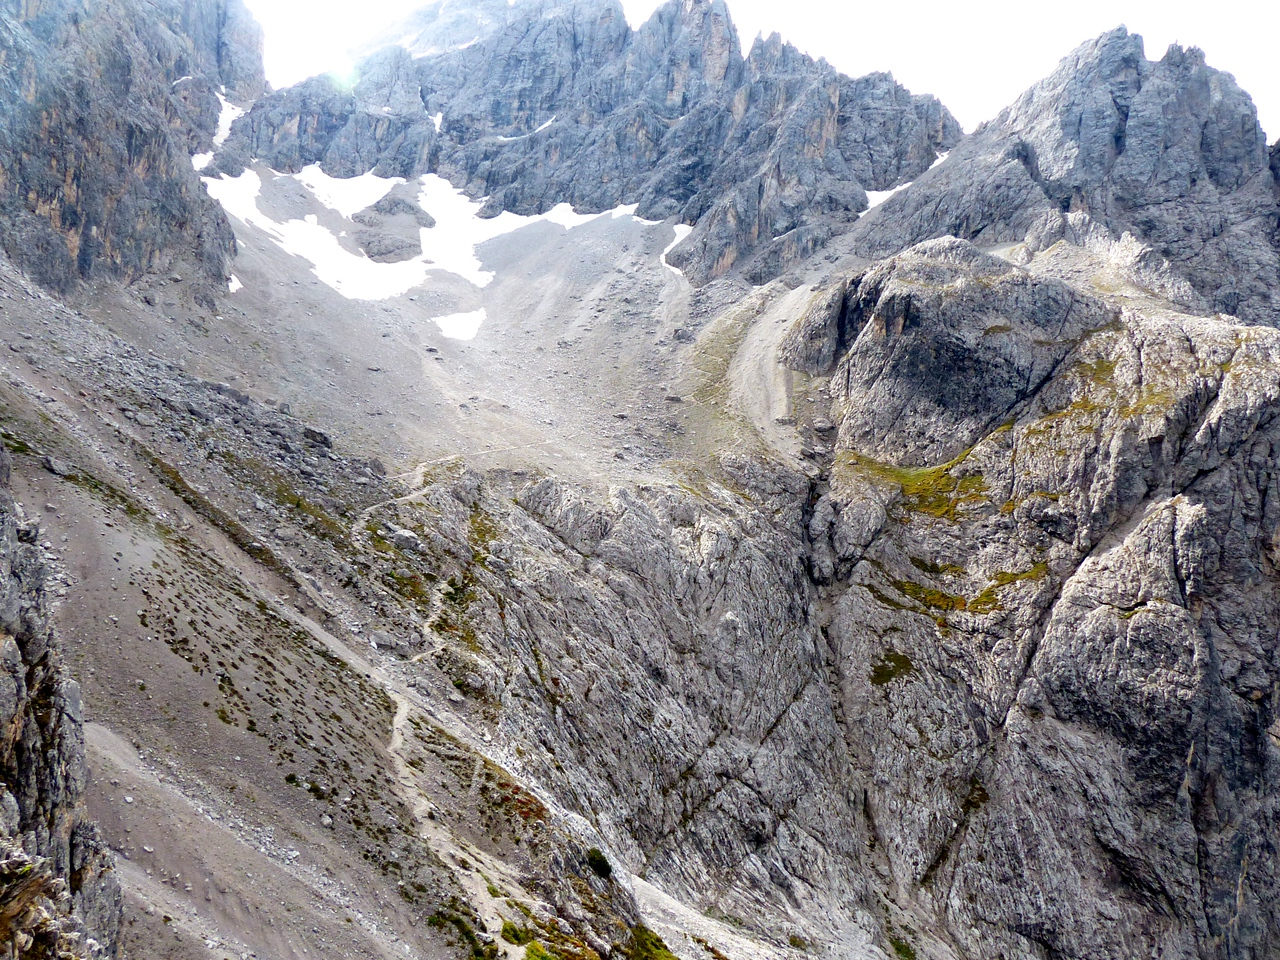 It was a rugged area.  The trail in the photo leads to a high pass in the upper right.